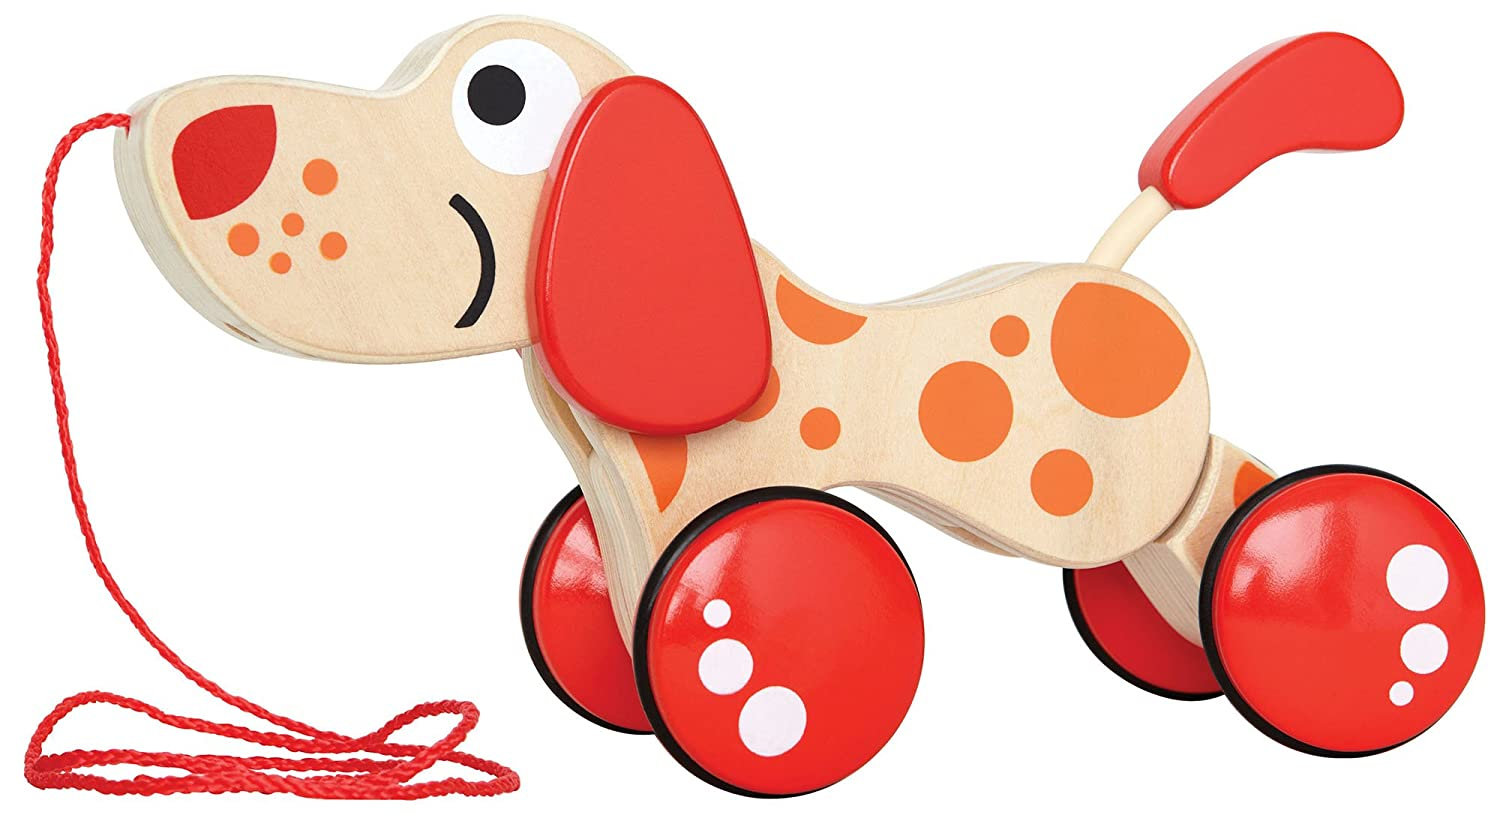 Walk-A-Long Puppy Wooden Pull Toy